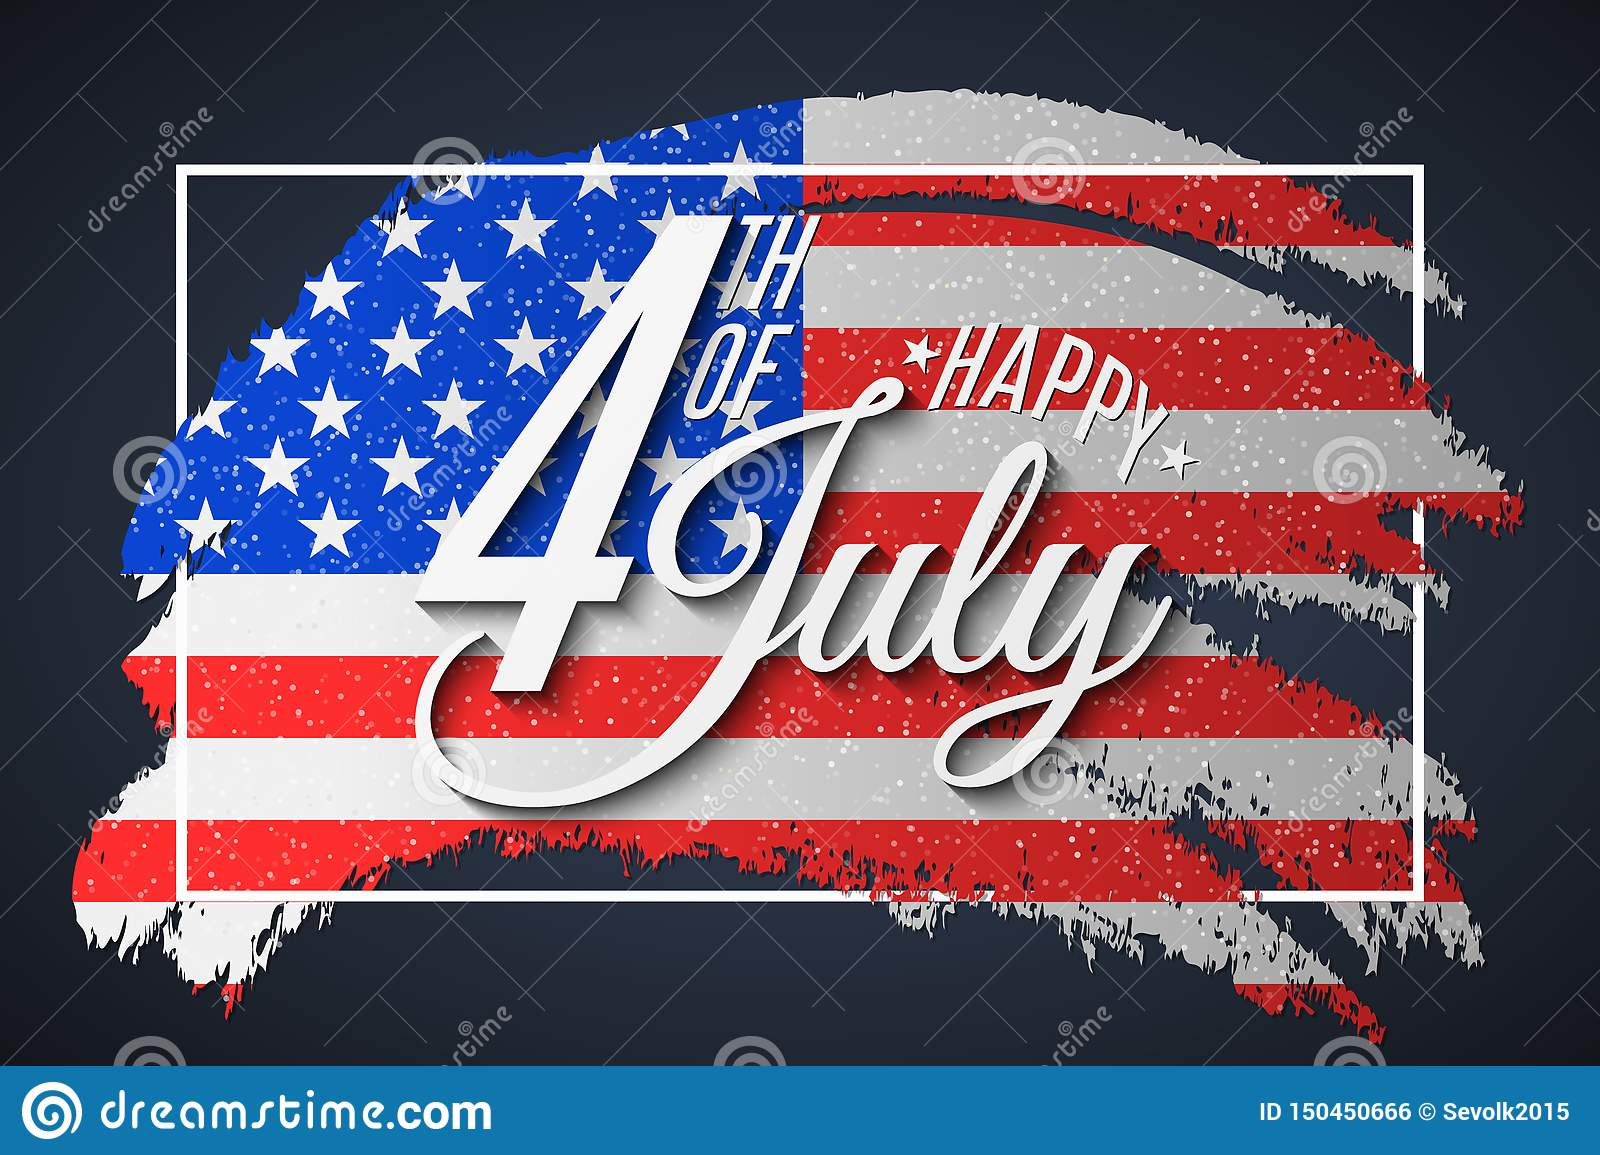 Banner for Independence Day. Greeting card for 4th of July. Grunge brush in frame. Text banner on USA flag background. United